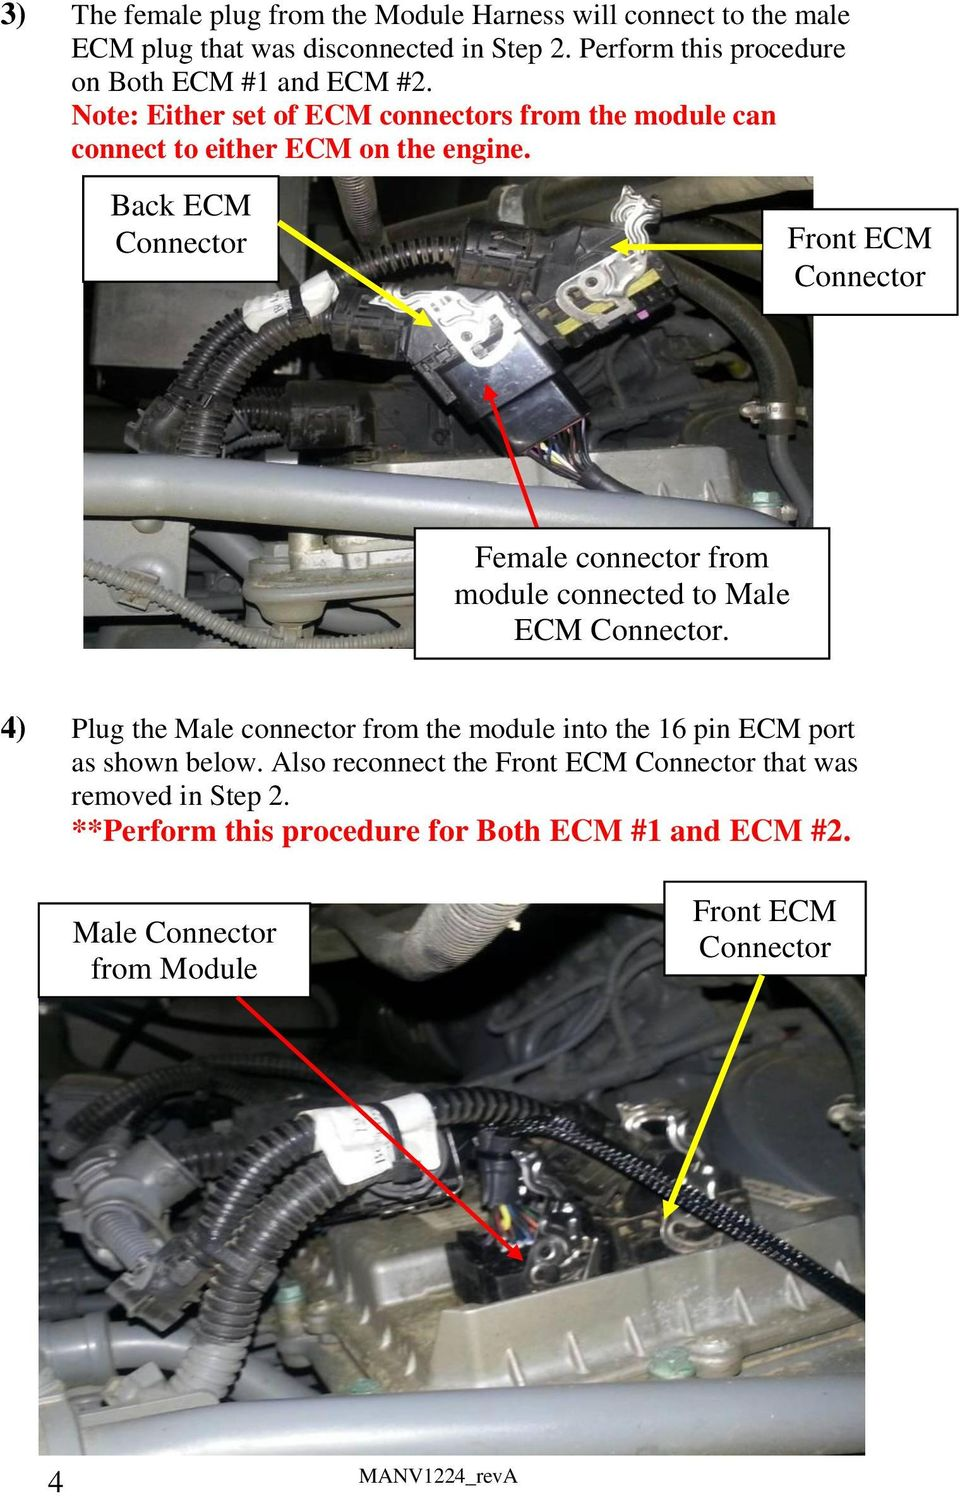 Note: Either set of ECM connectors from the module can connect to either ECM on the engine.